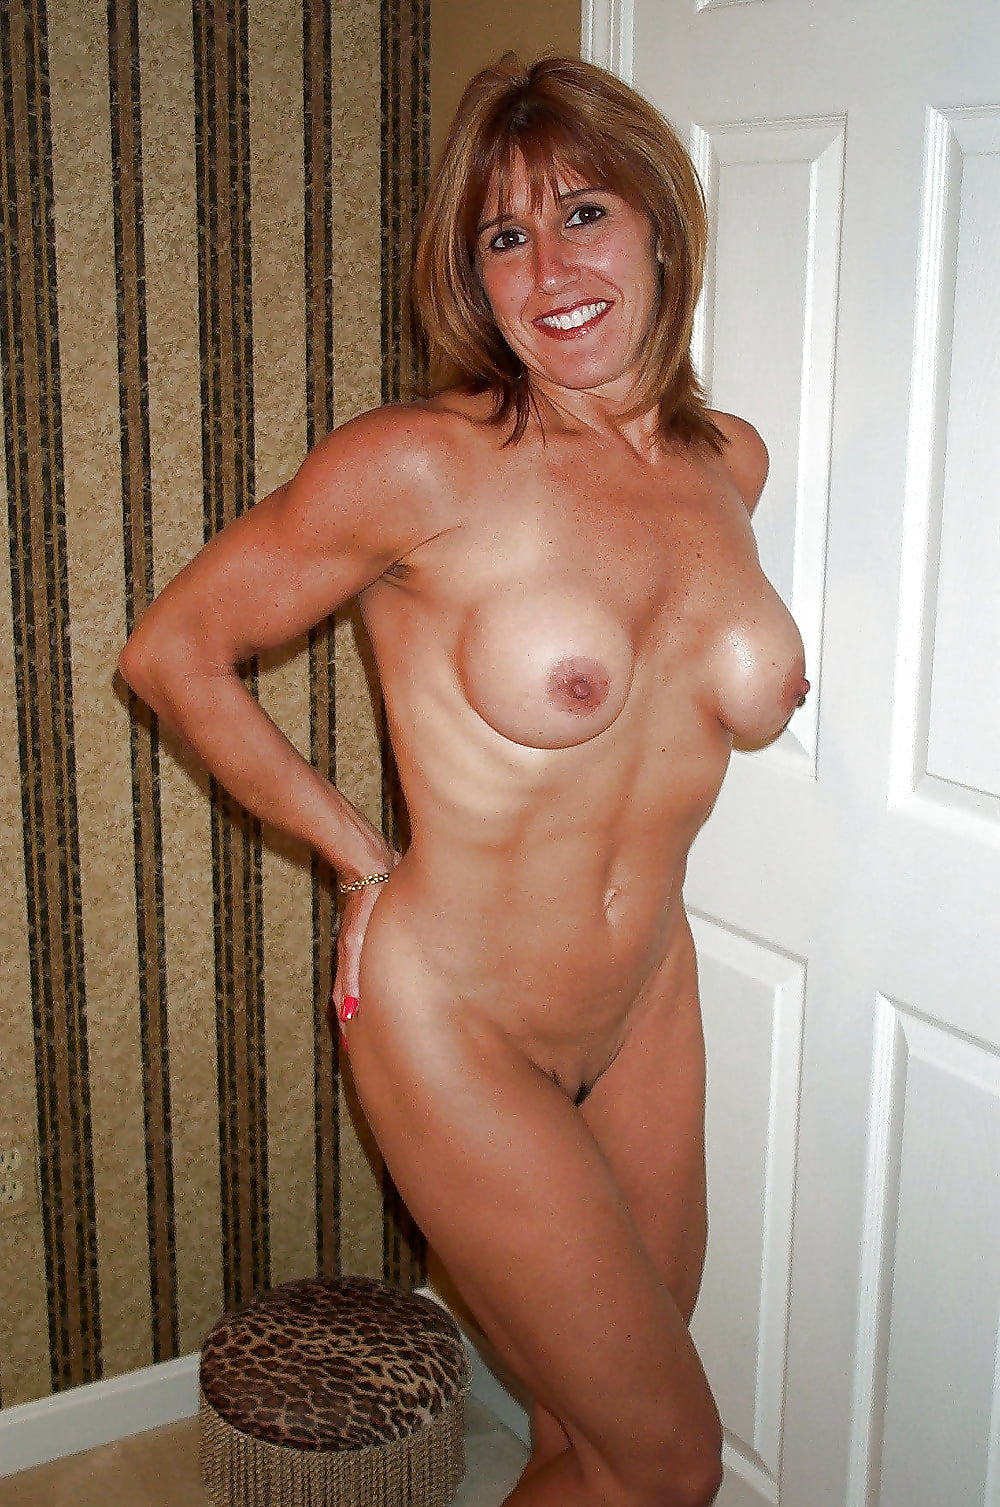 Free nude cougars — photo 7